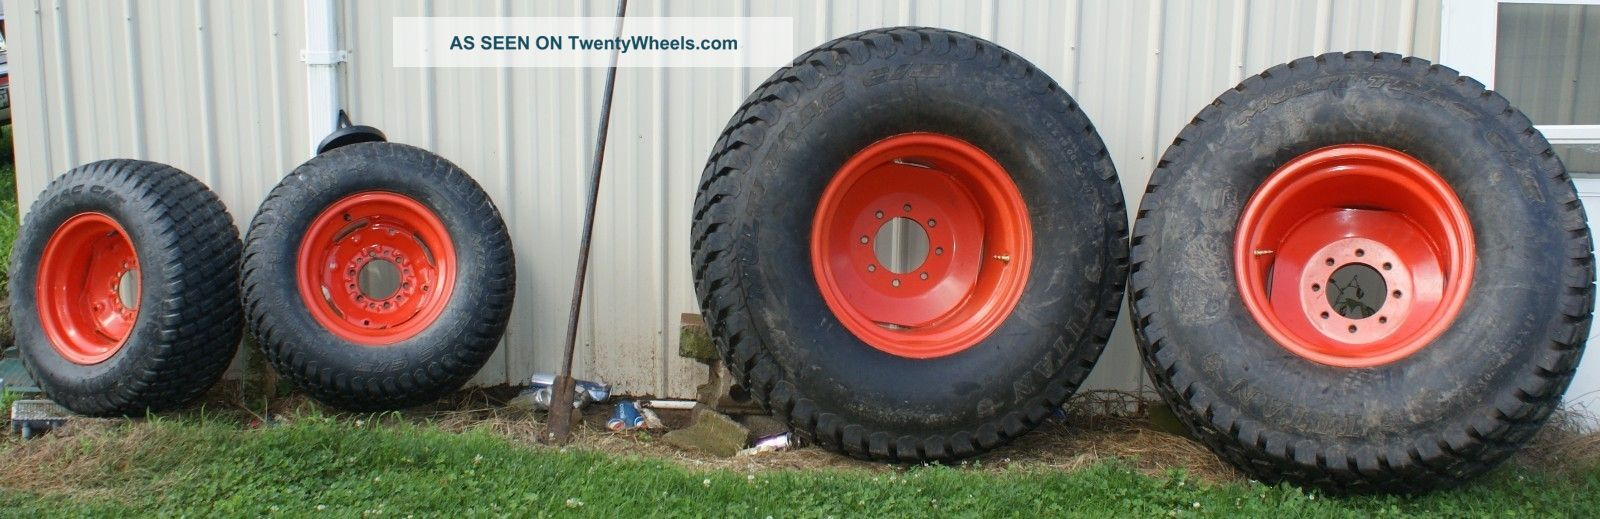 Kubota Turf Tires/wheels 50/30 Tractor Titan 44x18,  00 - 20 Nhs,  29x12.  50 - 15 Nhs + Tractors photo